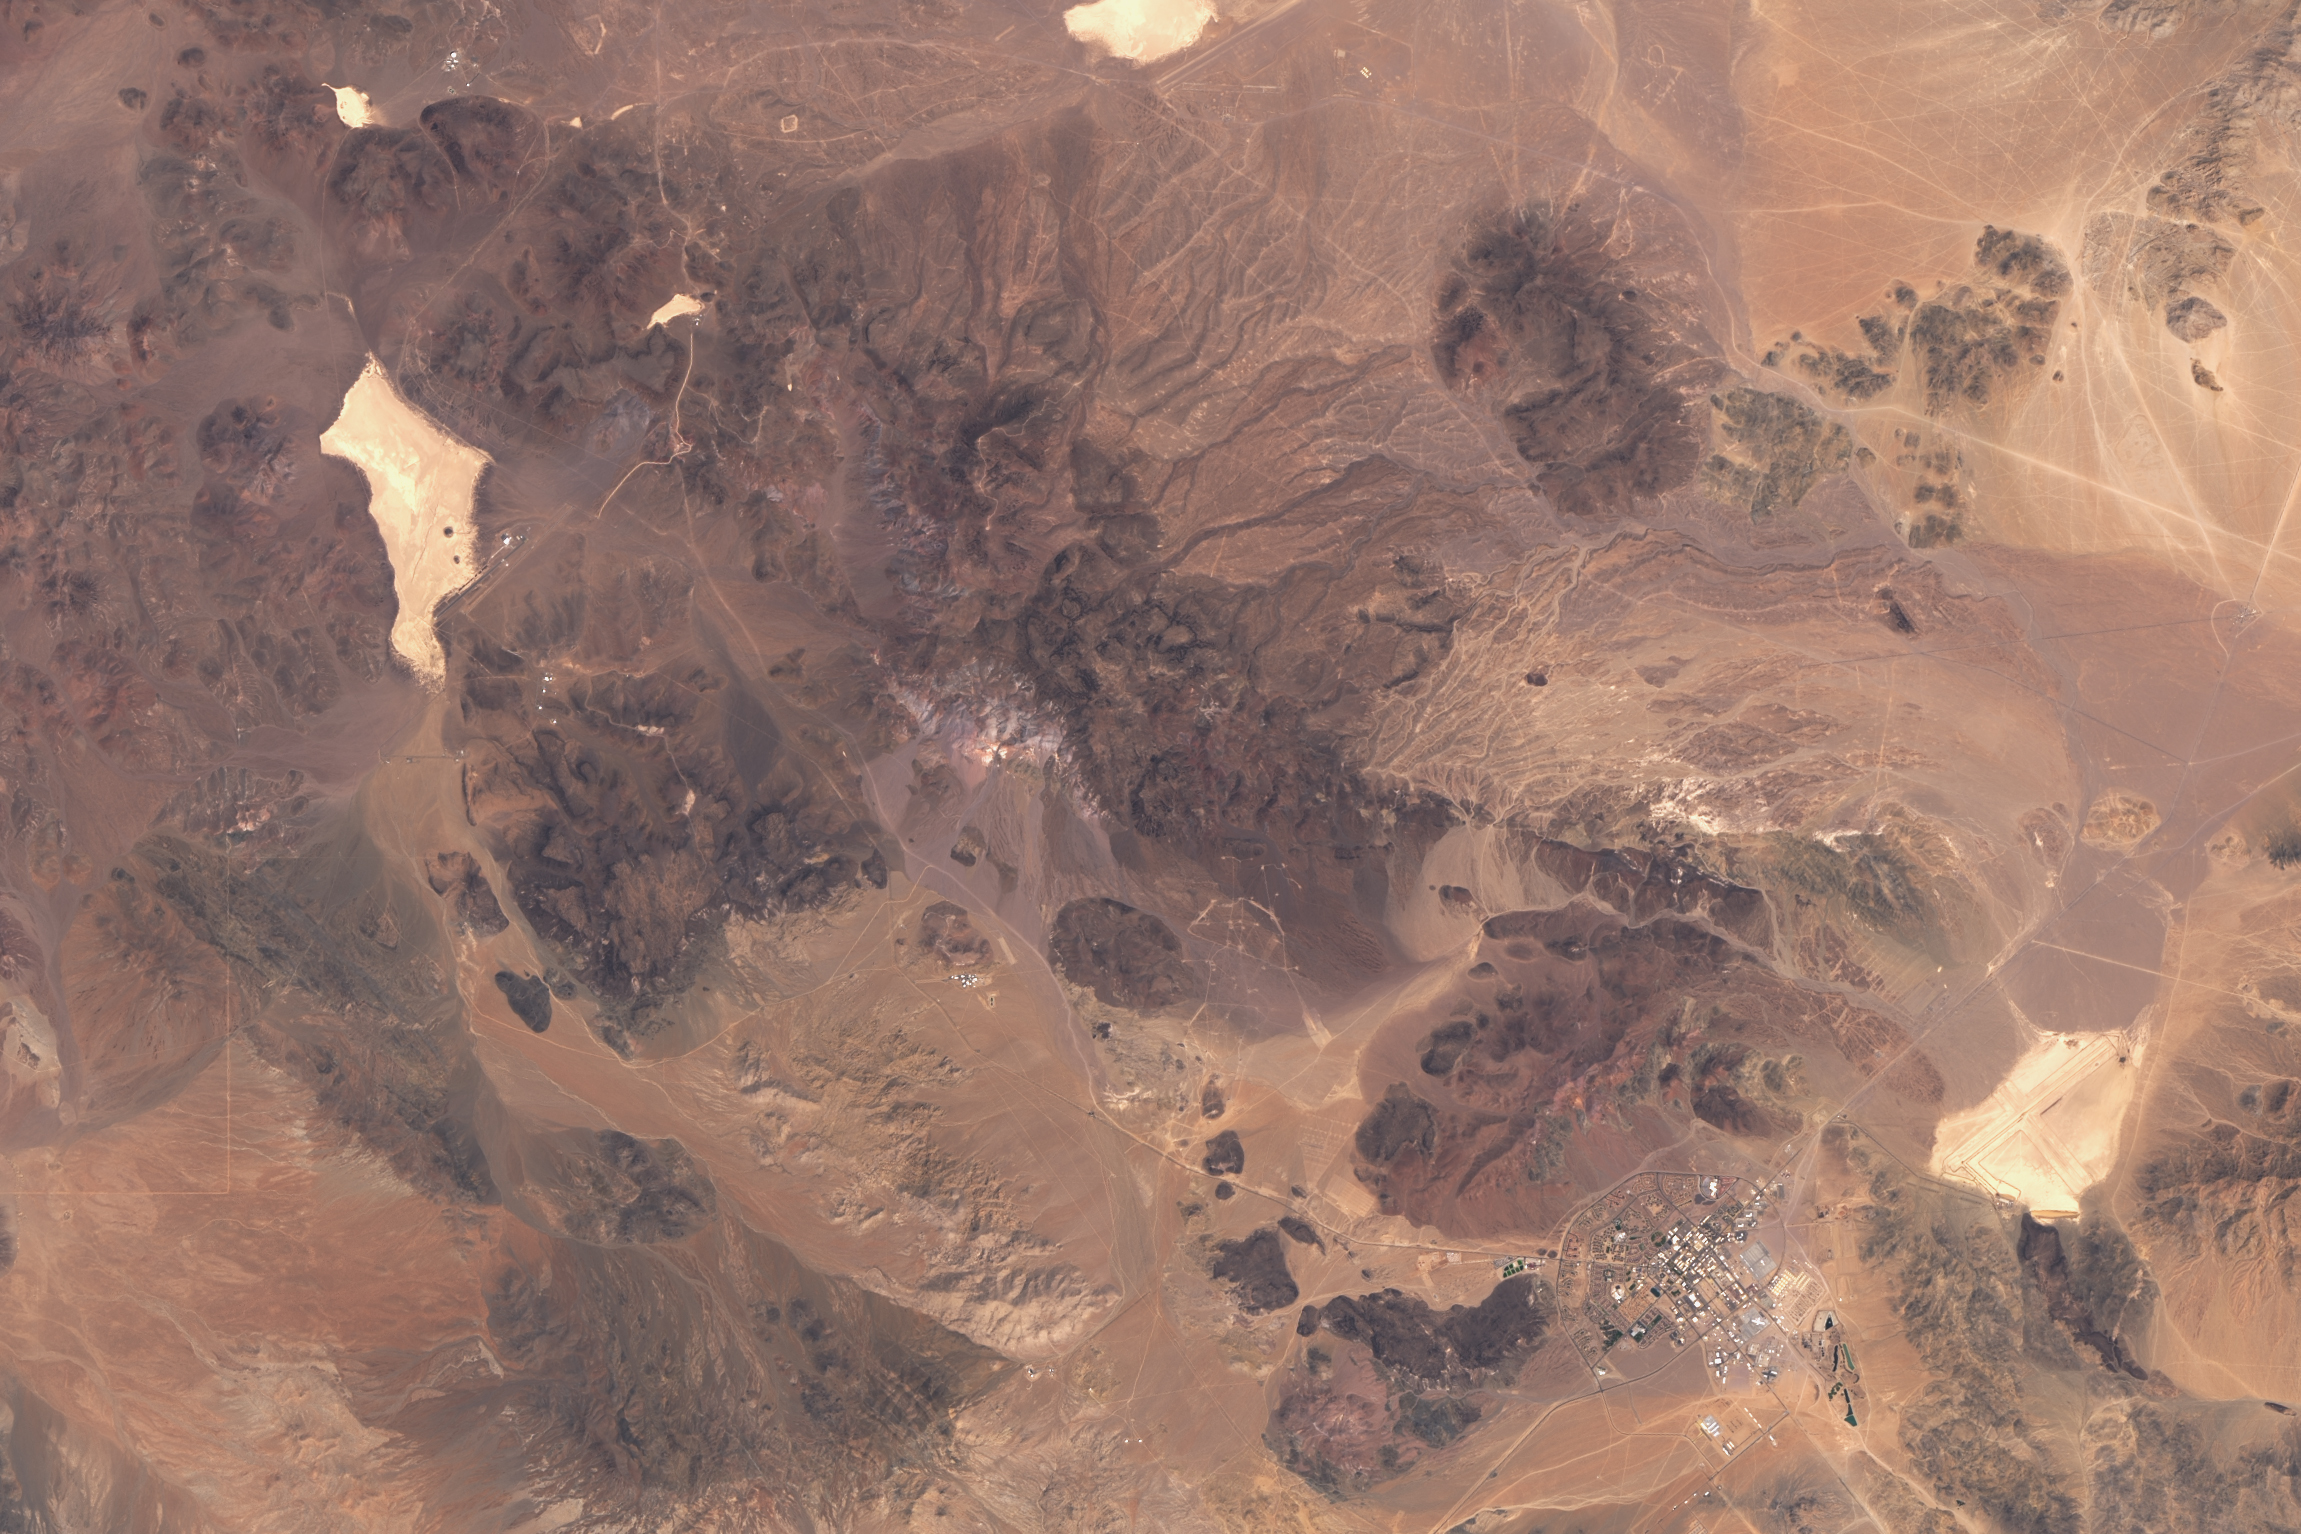 A Deep Space Communications Hub in the Desert